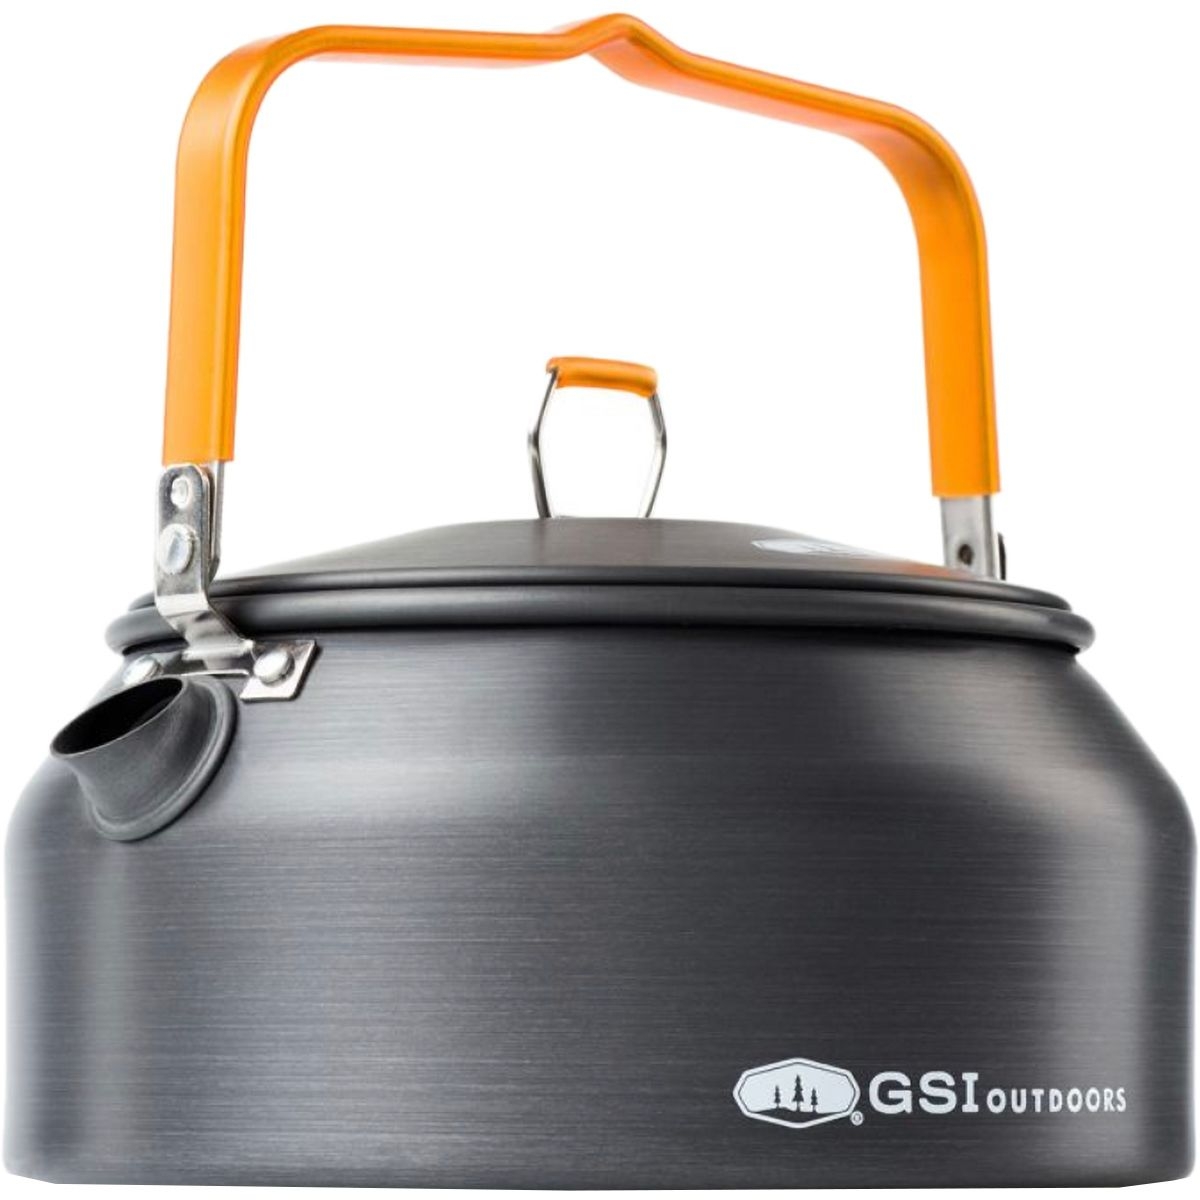 photo: GSI Outdoors Halulite Tea Kettle kettle